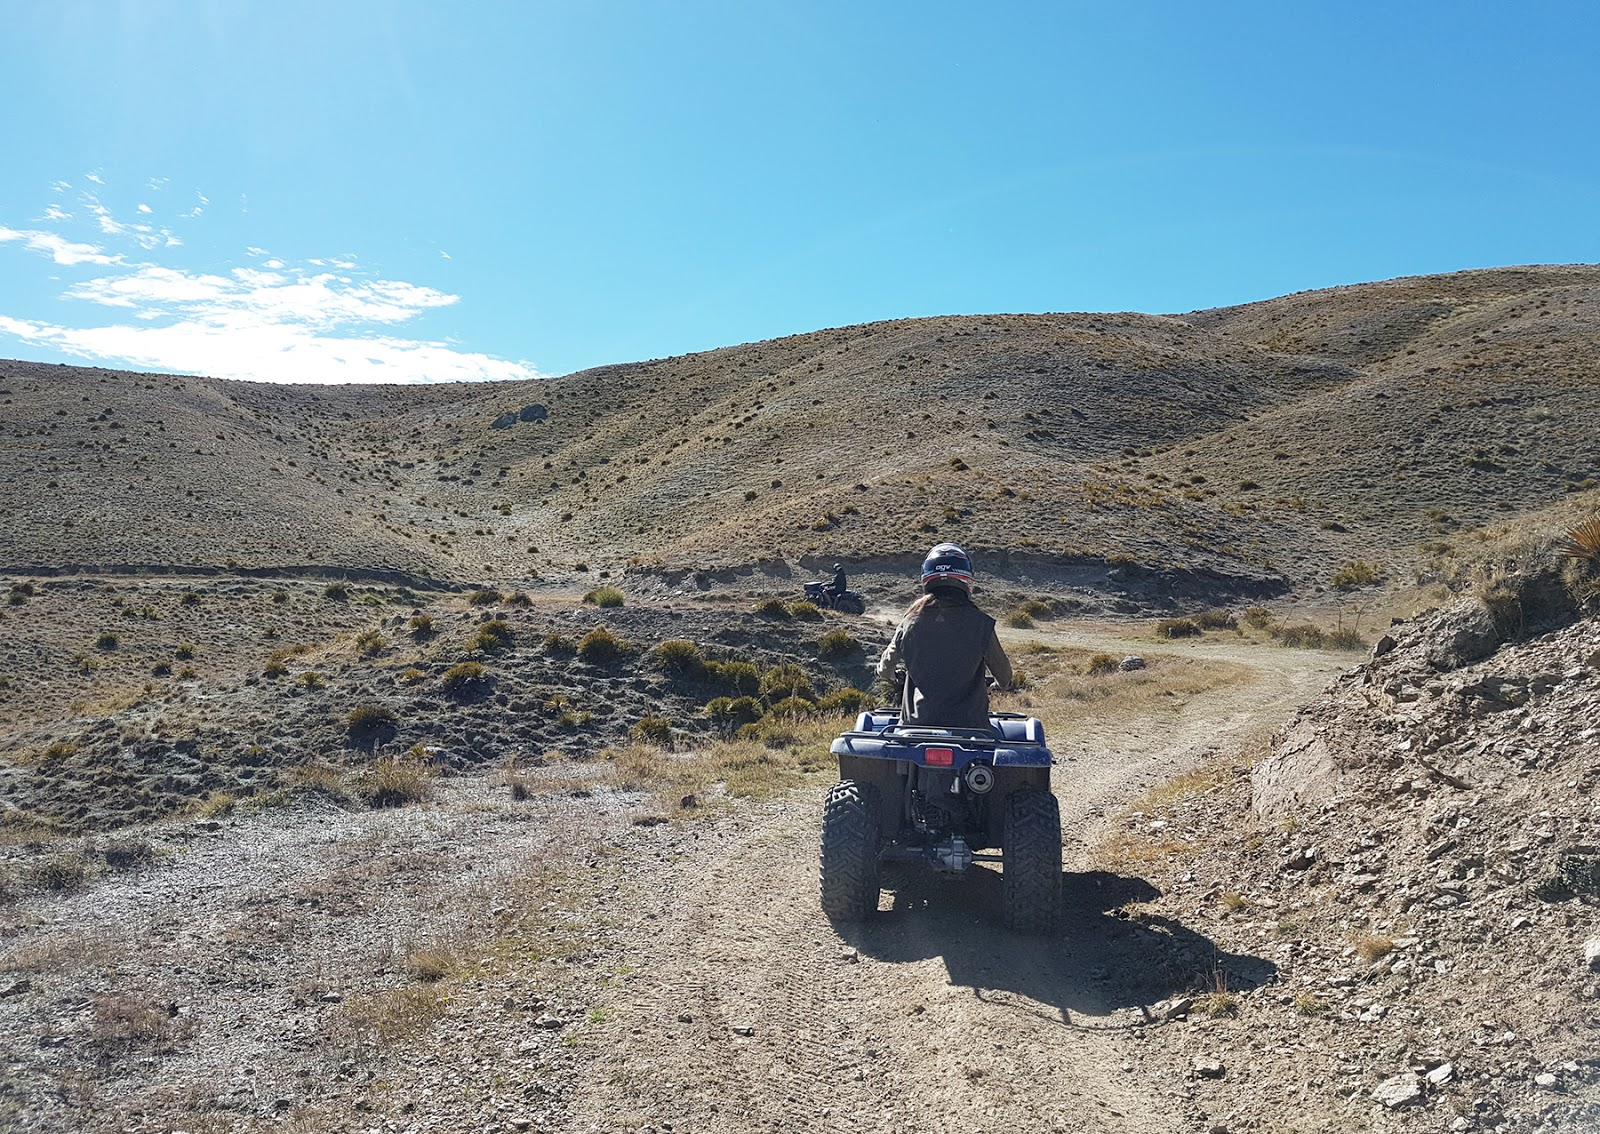 Euriental | luxury travel & style | Cardrona quad bikes, New Zealand